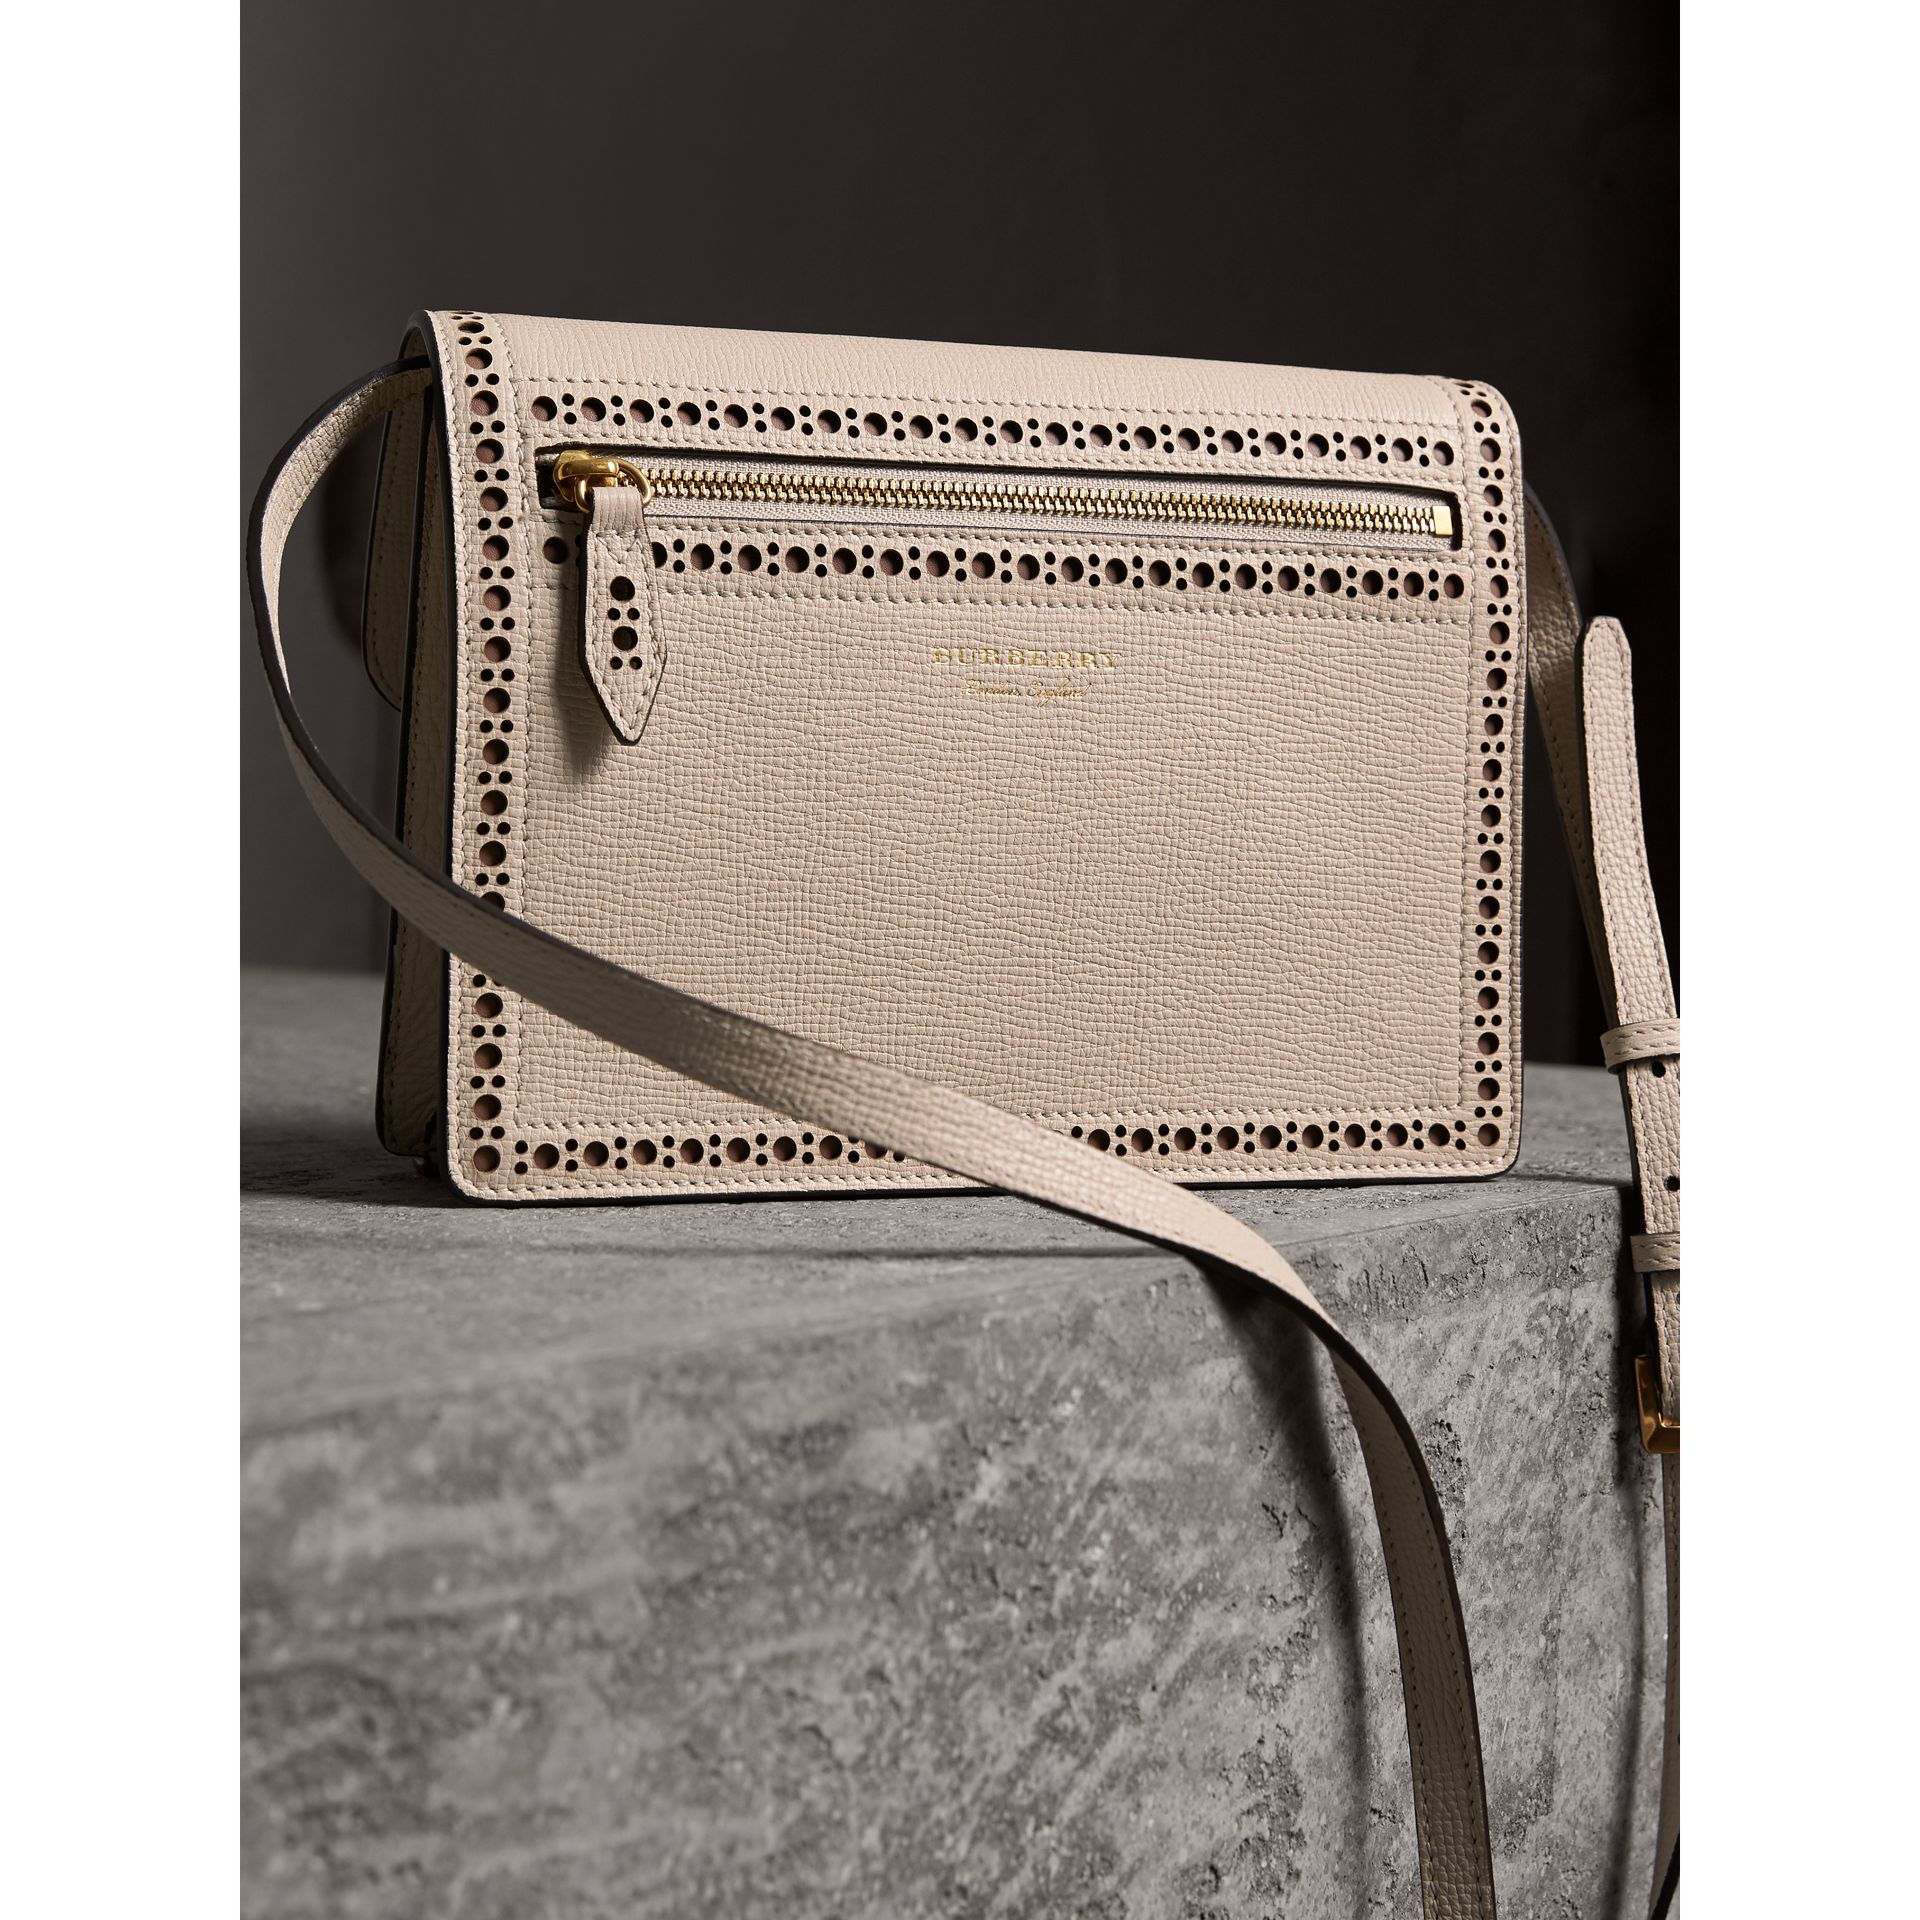 Brogue and Fringe Detail Leather Crossbody Bag in Limestone - Women | Burberry - gallery image 3